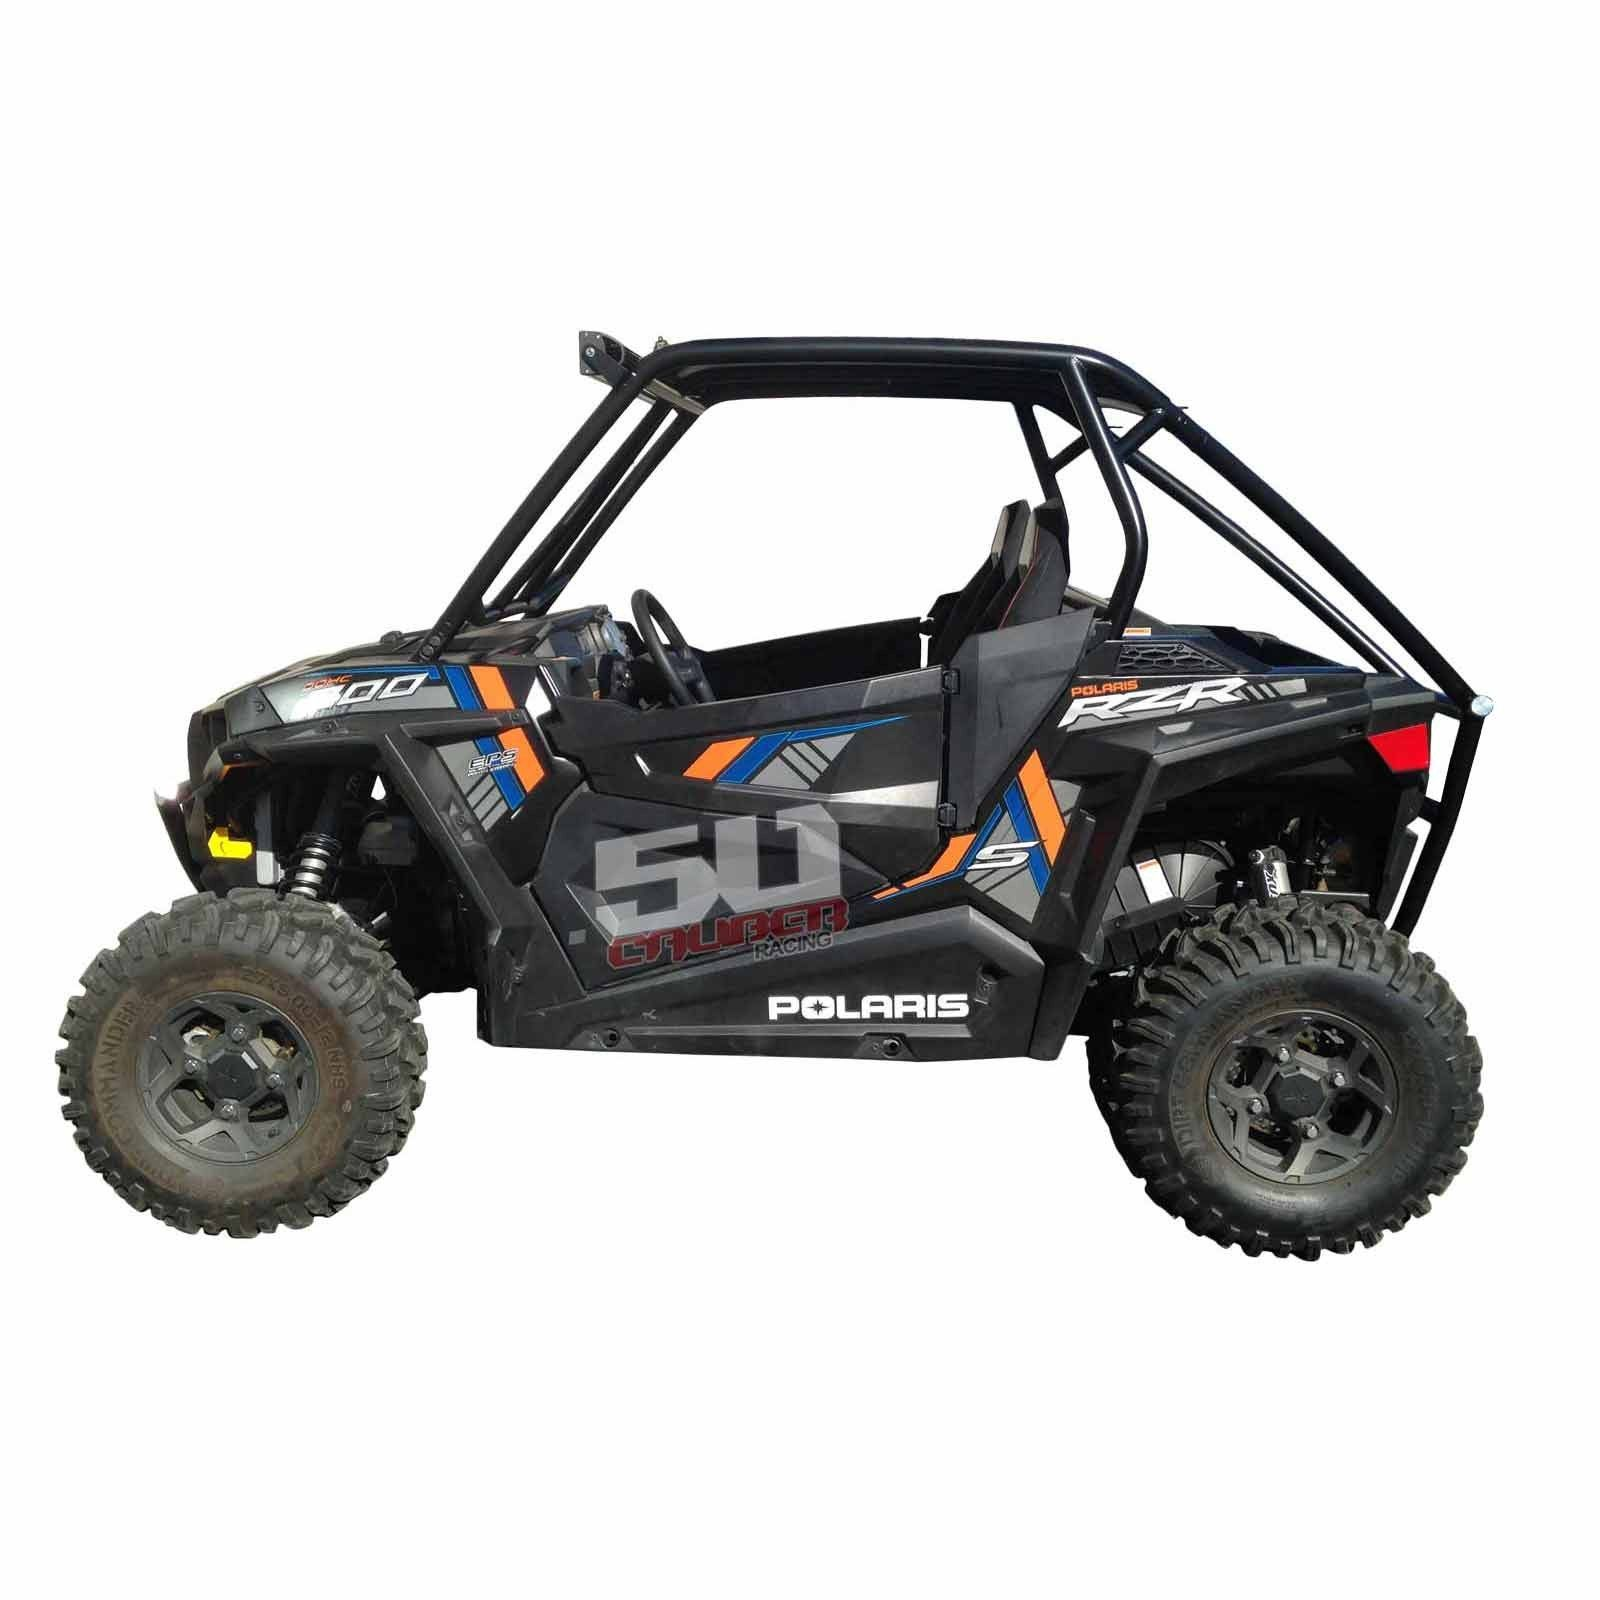 polaris rzr s 900 pro race roll cage full roof light bar. Black Bedroom Furniture Sets. Home Design Ideas